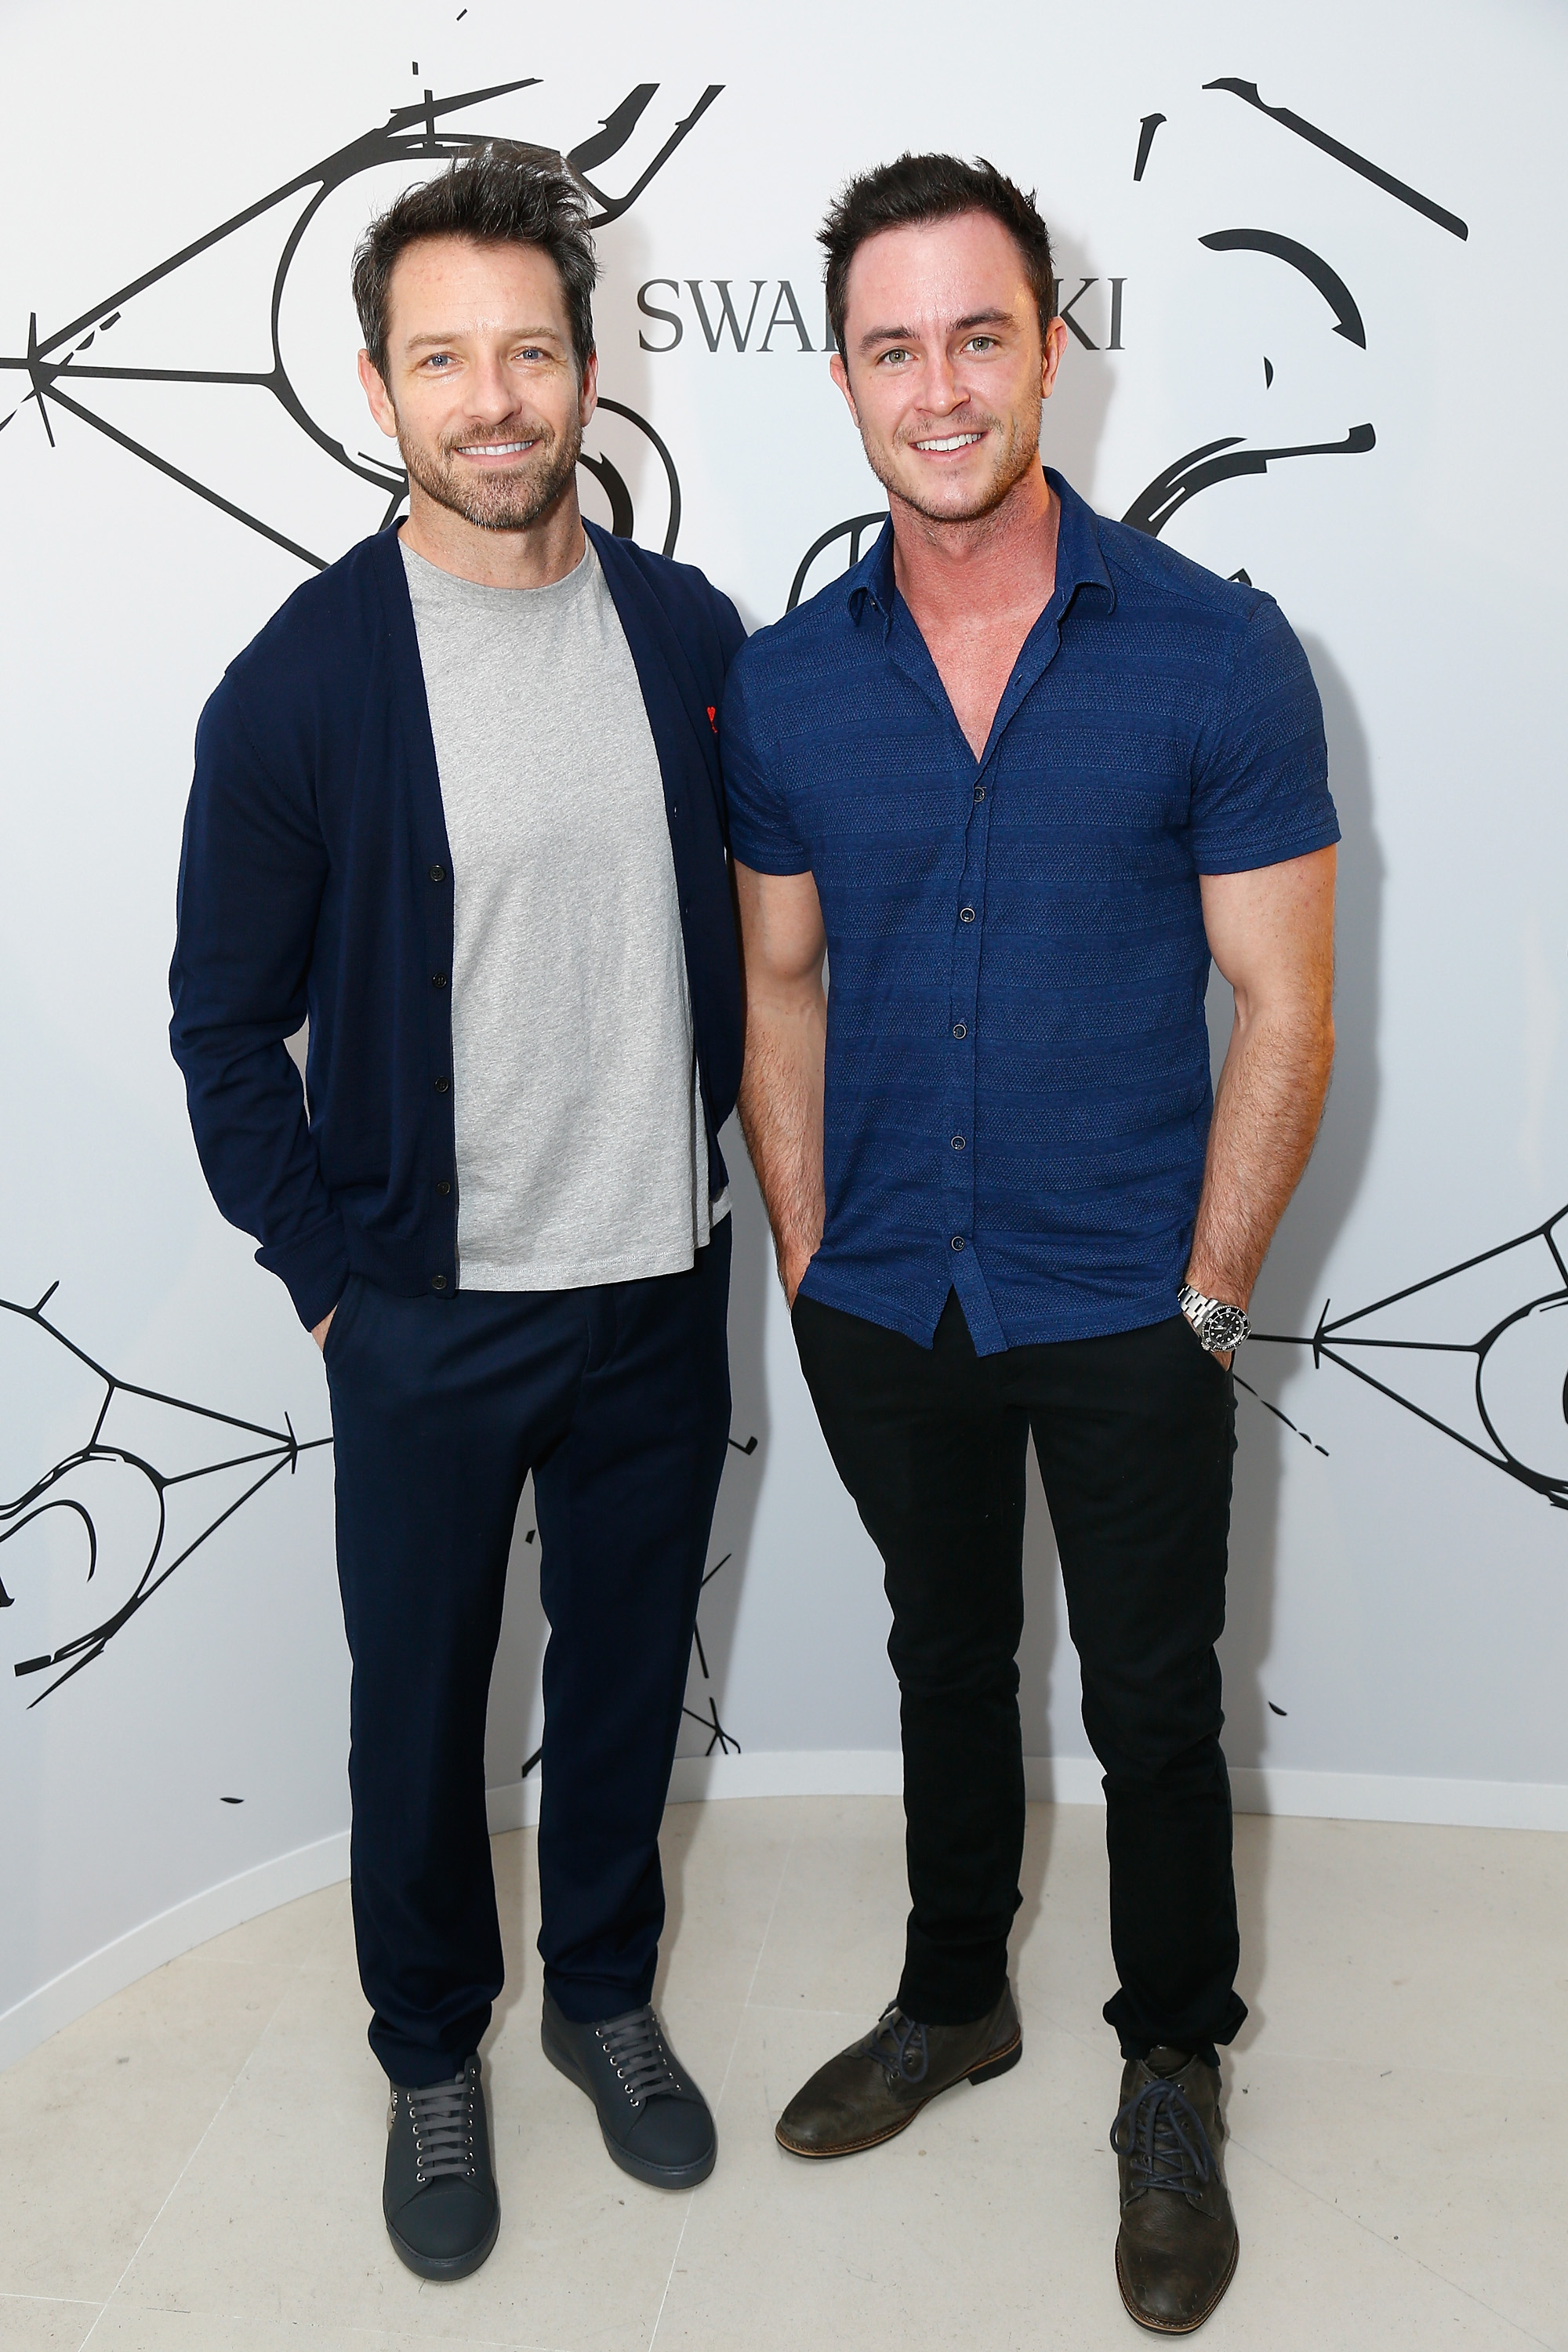 PARIS, FRANCE - JULY 03:  Ian Bohen and Ryan Kelley attend the Iris Van Herpen X Swarovski Cocktail Haute Couture Fall/Winter 2017-2018 show as part of Haute Couture Paris Fashion Week on July 3, 2017 in Paris, France.  (Photo by Julien Hekimian/Getty Images) *** Local Caption *** Ian Bohen; Ryan Kelley